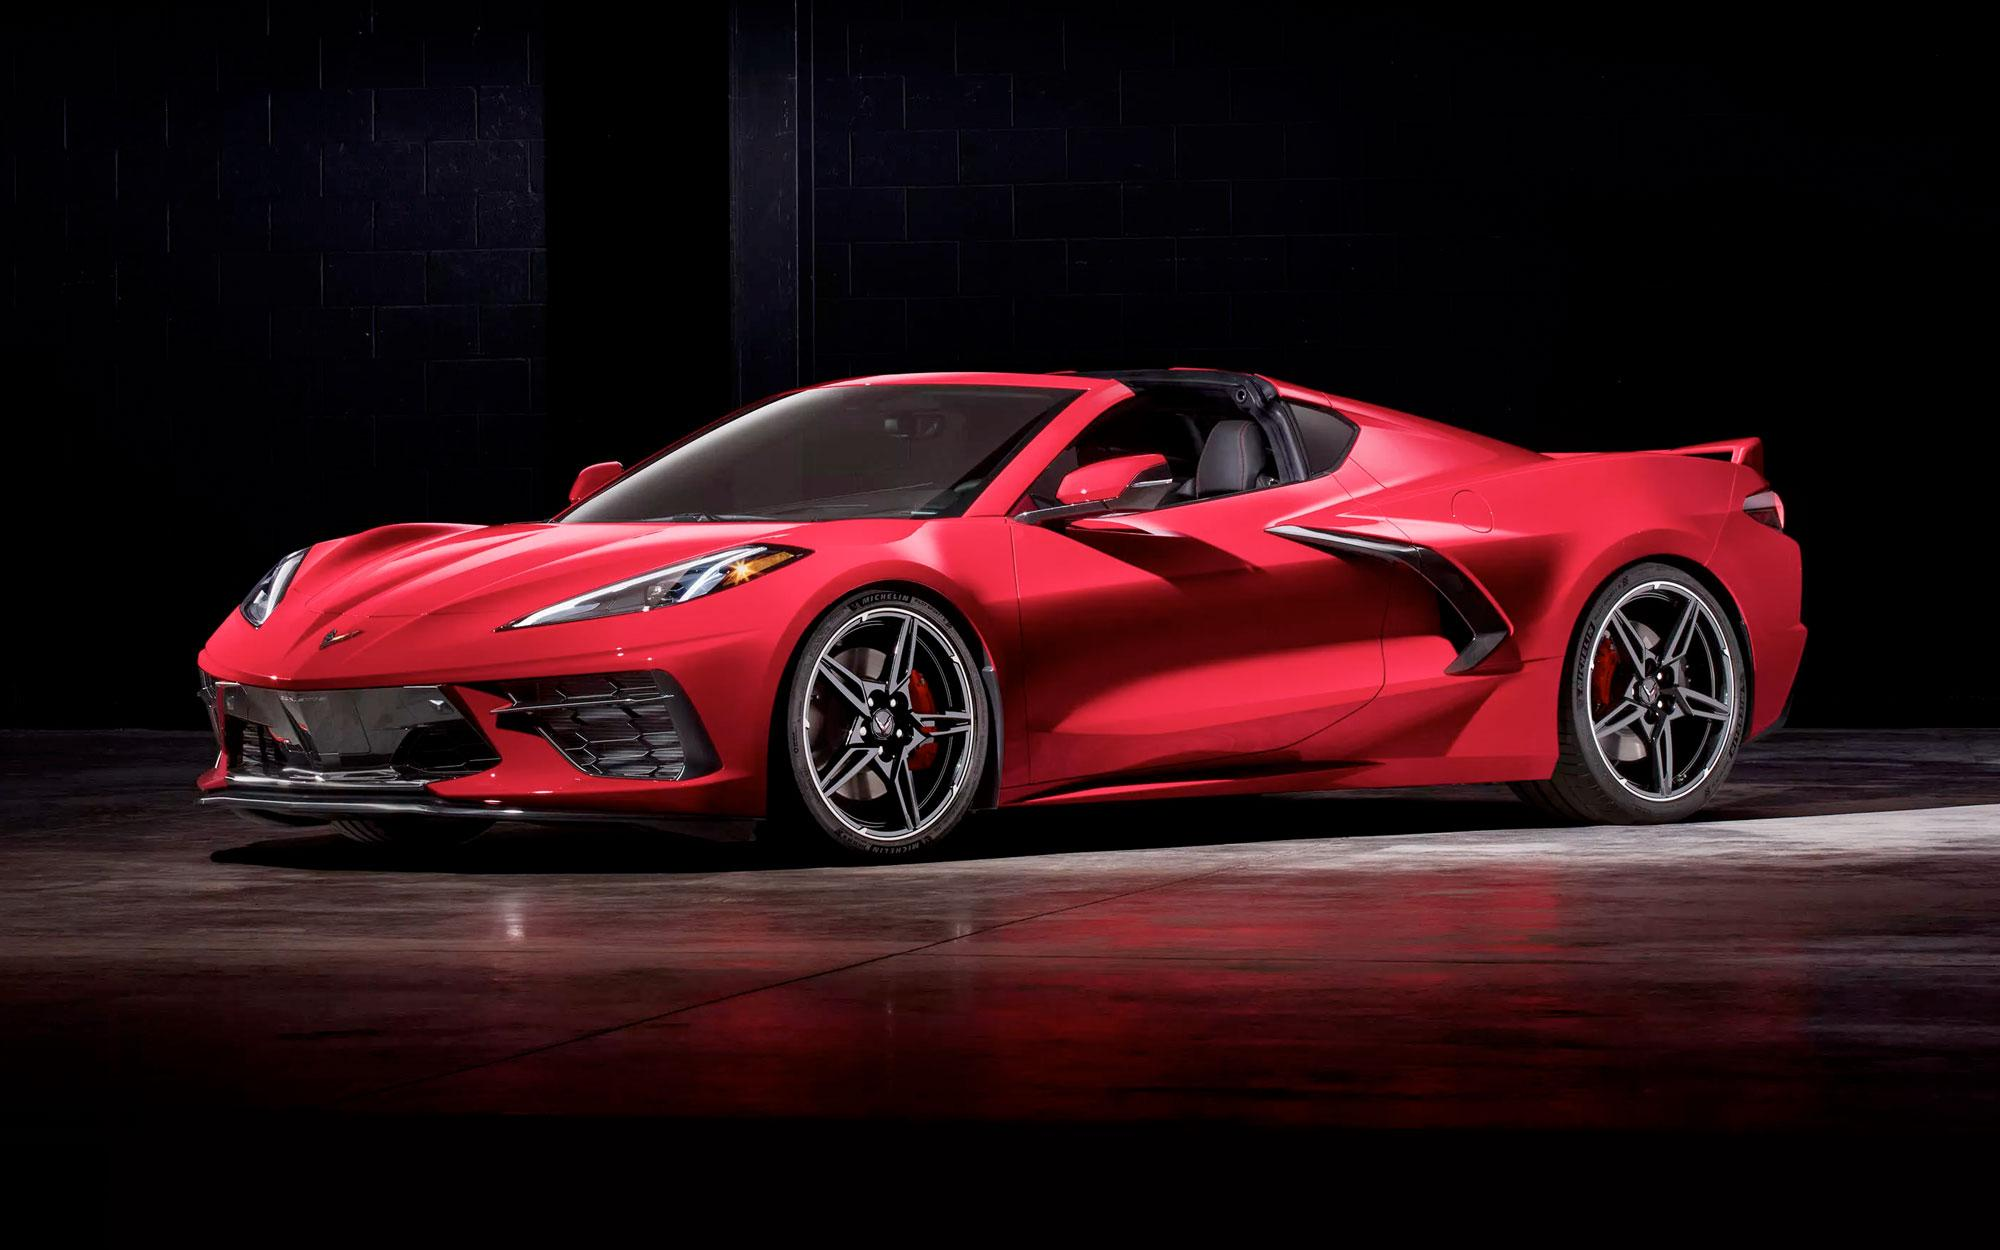 'Best Chevrolet Ever': New Corvette from GM Taps into Booming Trump Economy